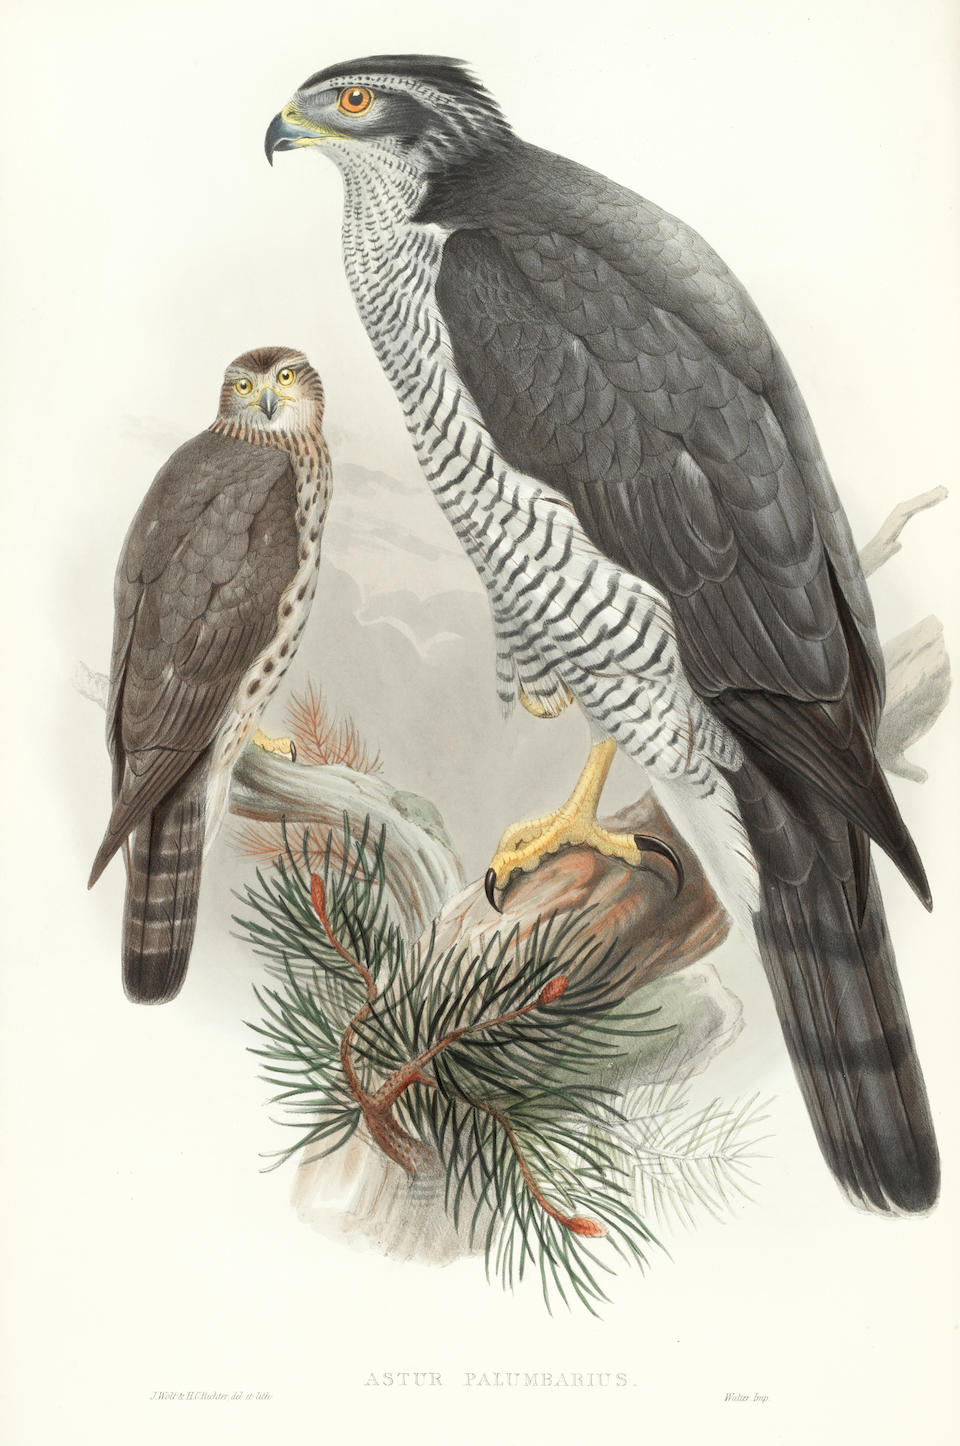 GOULD (JOHN) The Birds of Great Britain, 5 vol., FIRST EDITION, Taylor and Francis [for] the Author, [1862]-1873